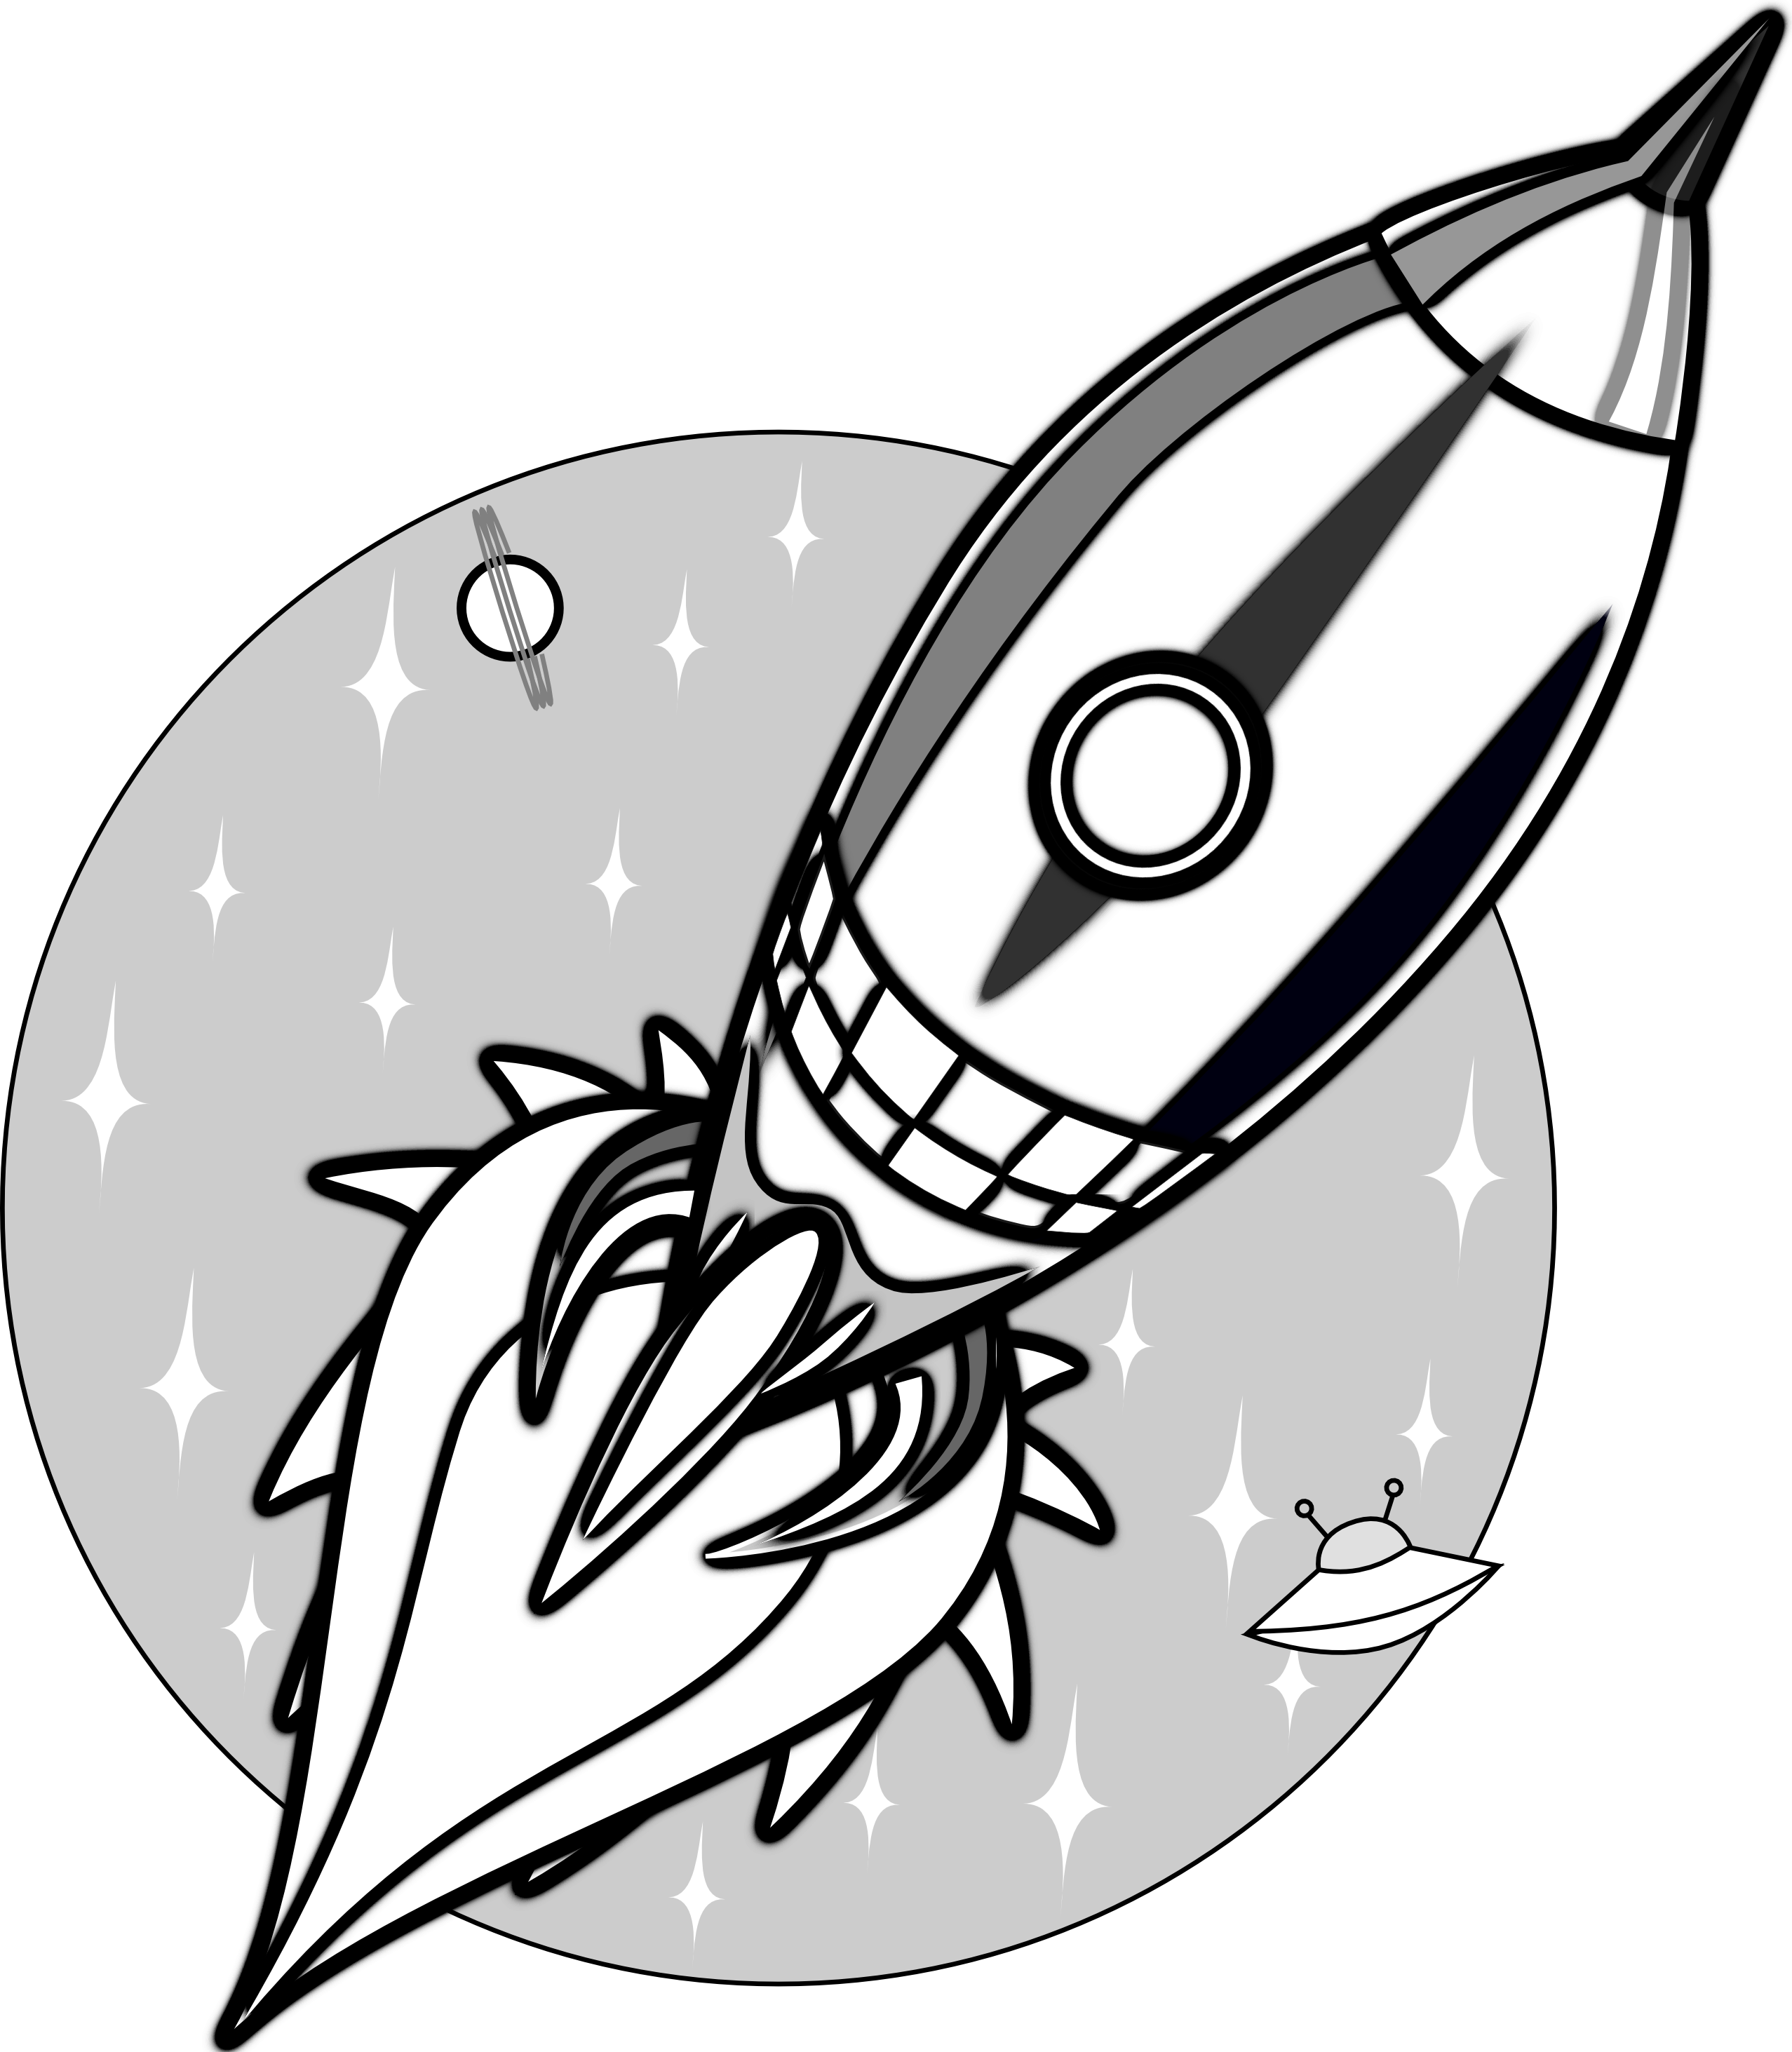 Drawing spaceships outline. Rockets at getdrawings com